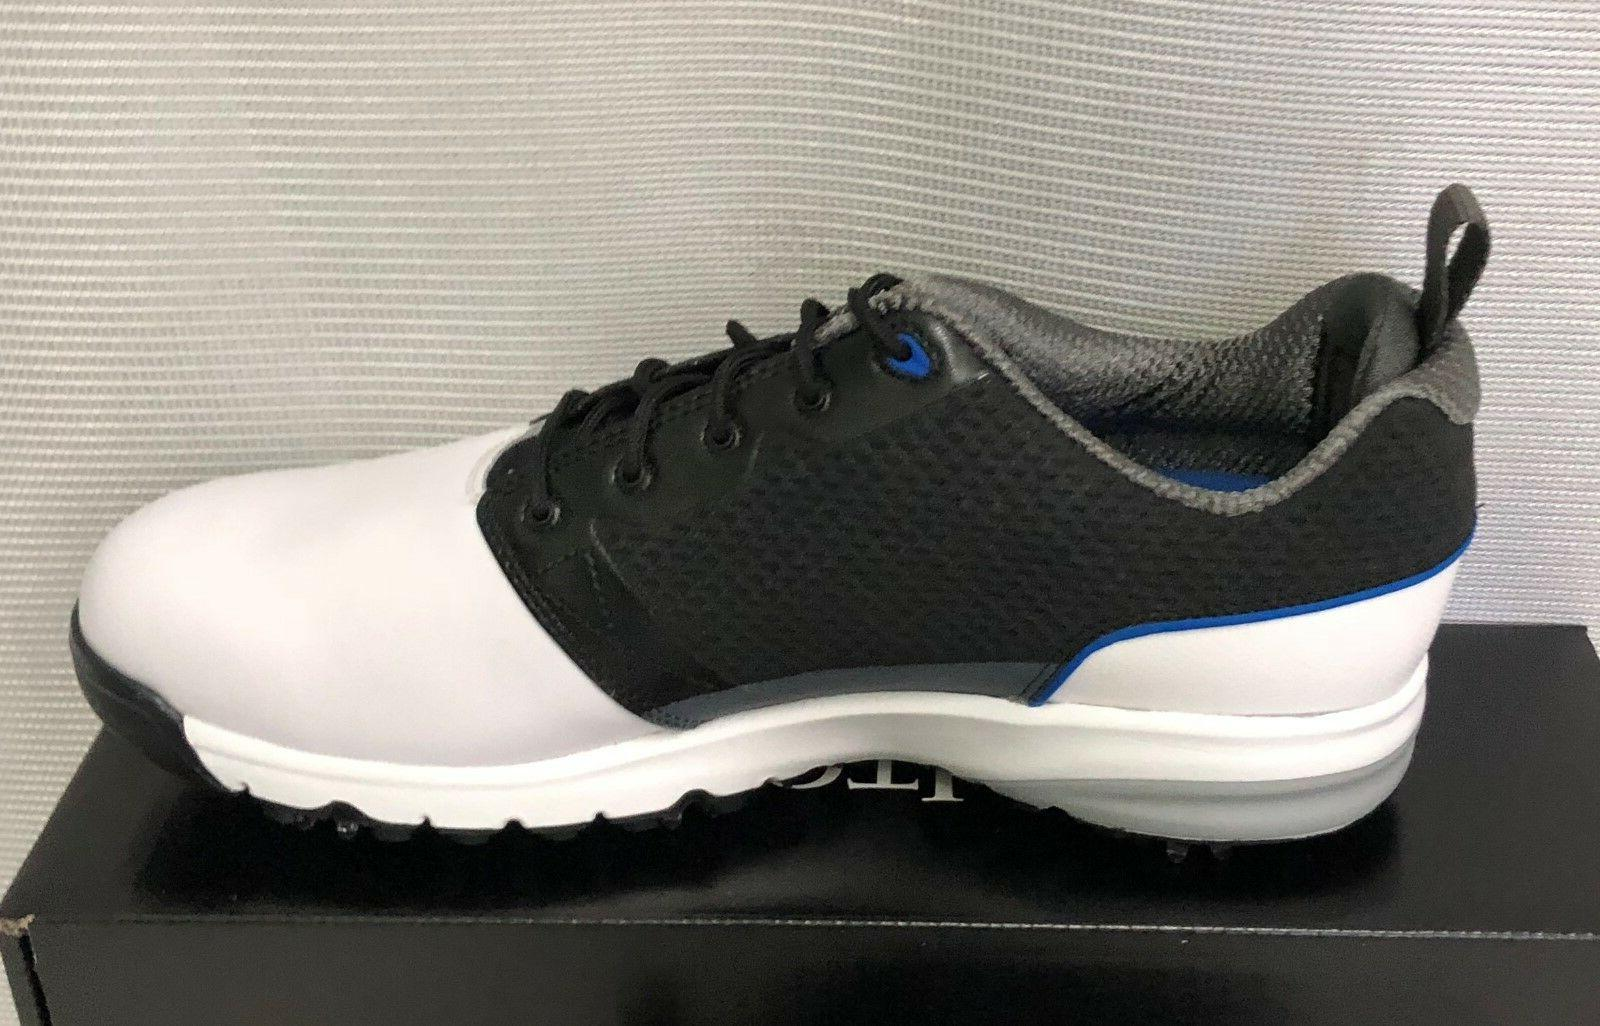 FootJoy ContourFIT Golf Shoes in Box